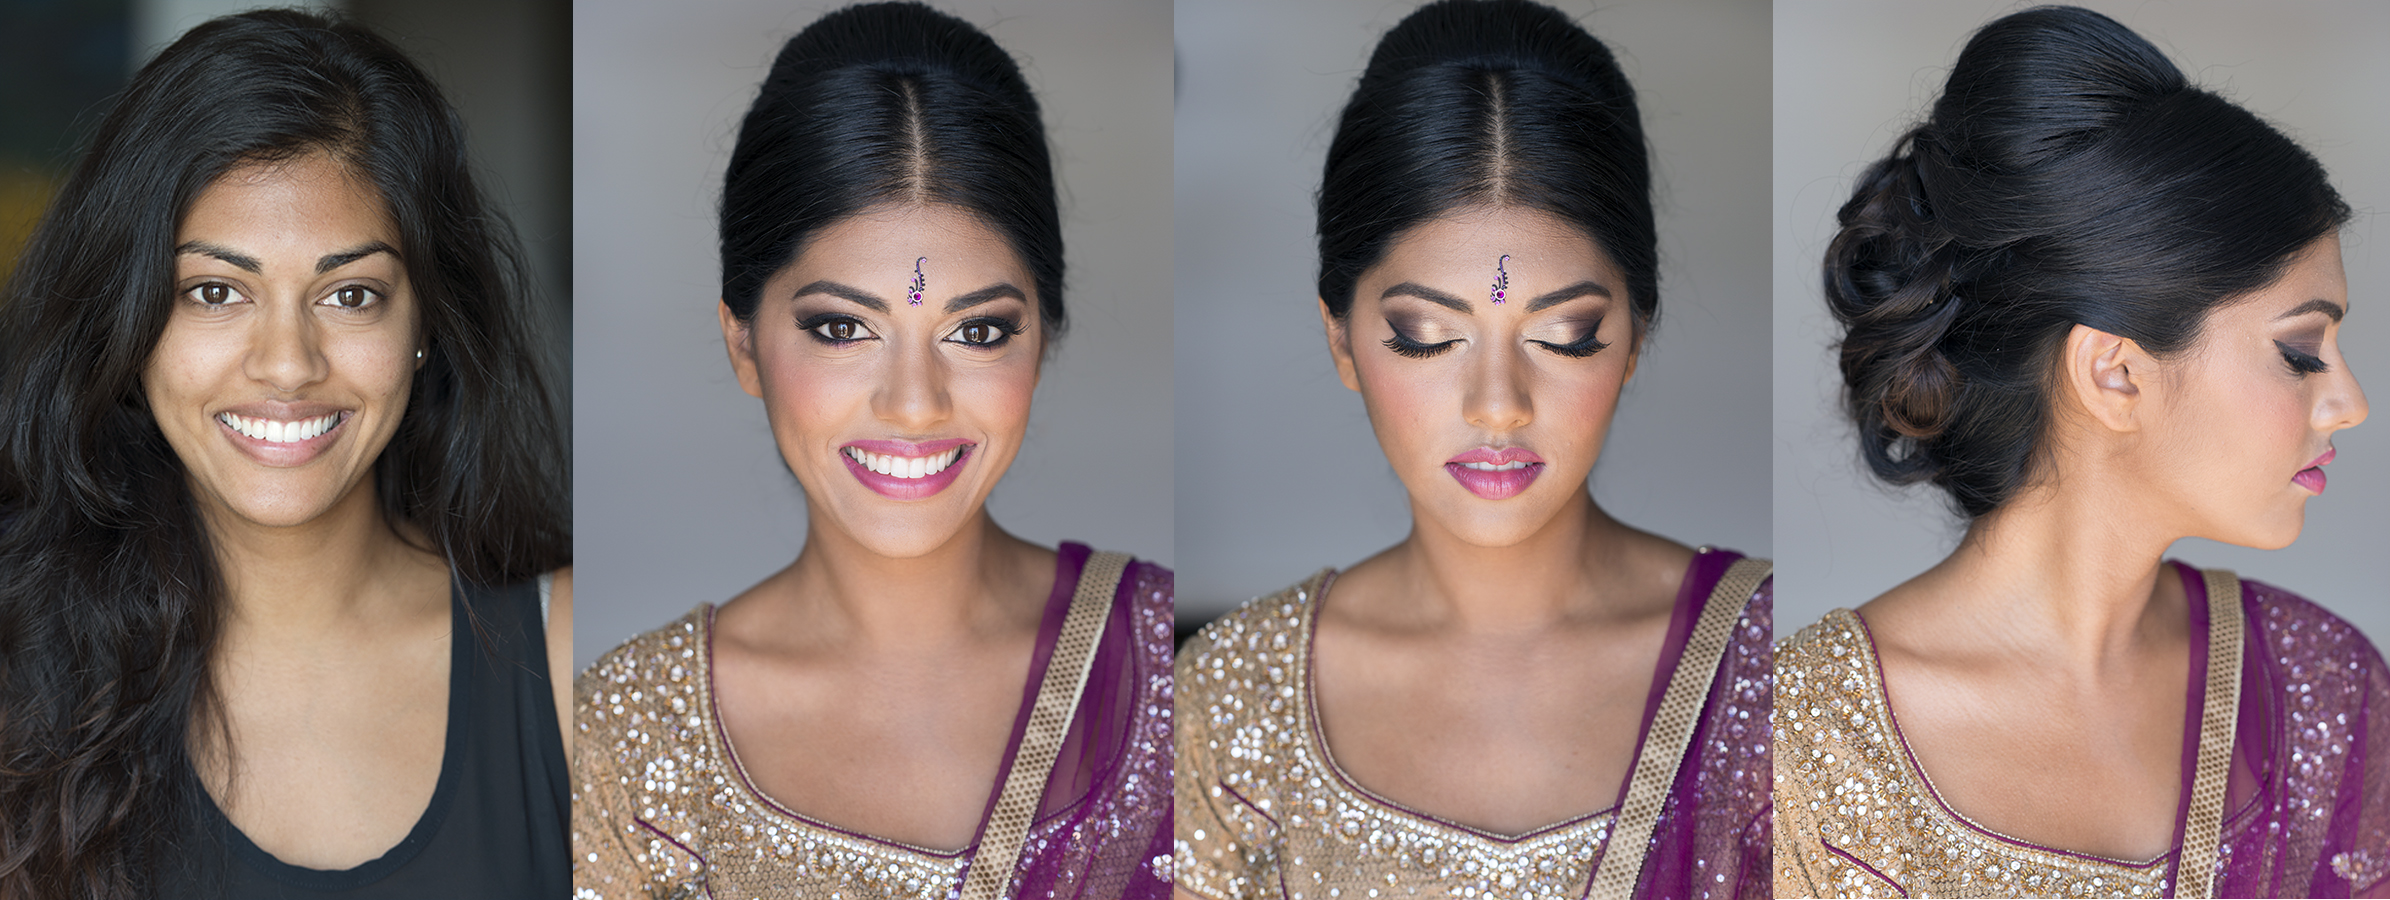 Before and after indian natural headshot makeup and hair by Agne Beauty Affair event celebration bridal pink gold smokey eyes.jpg